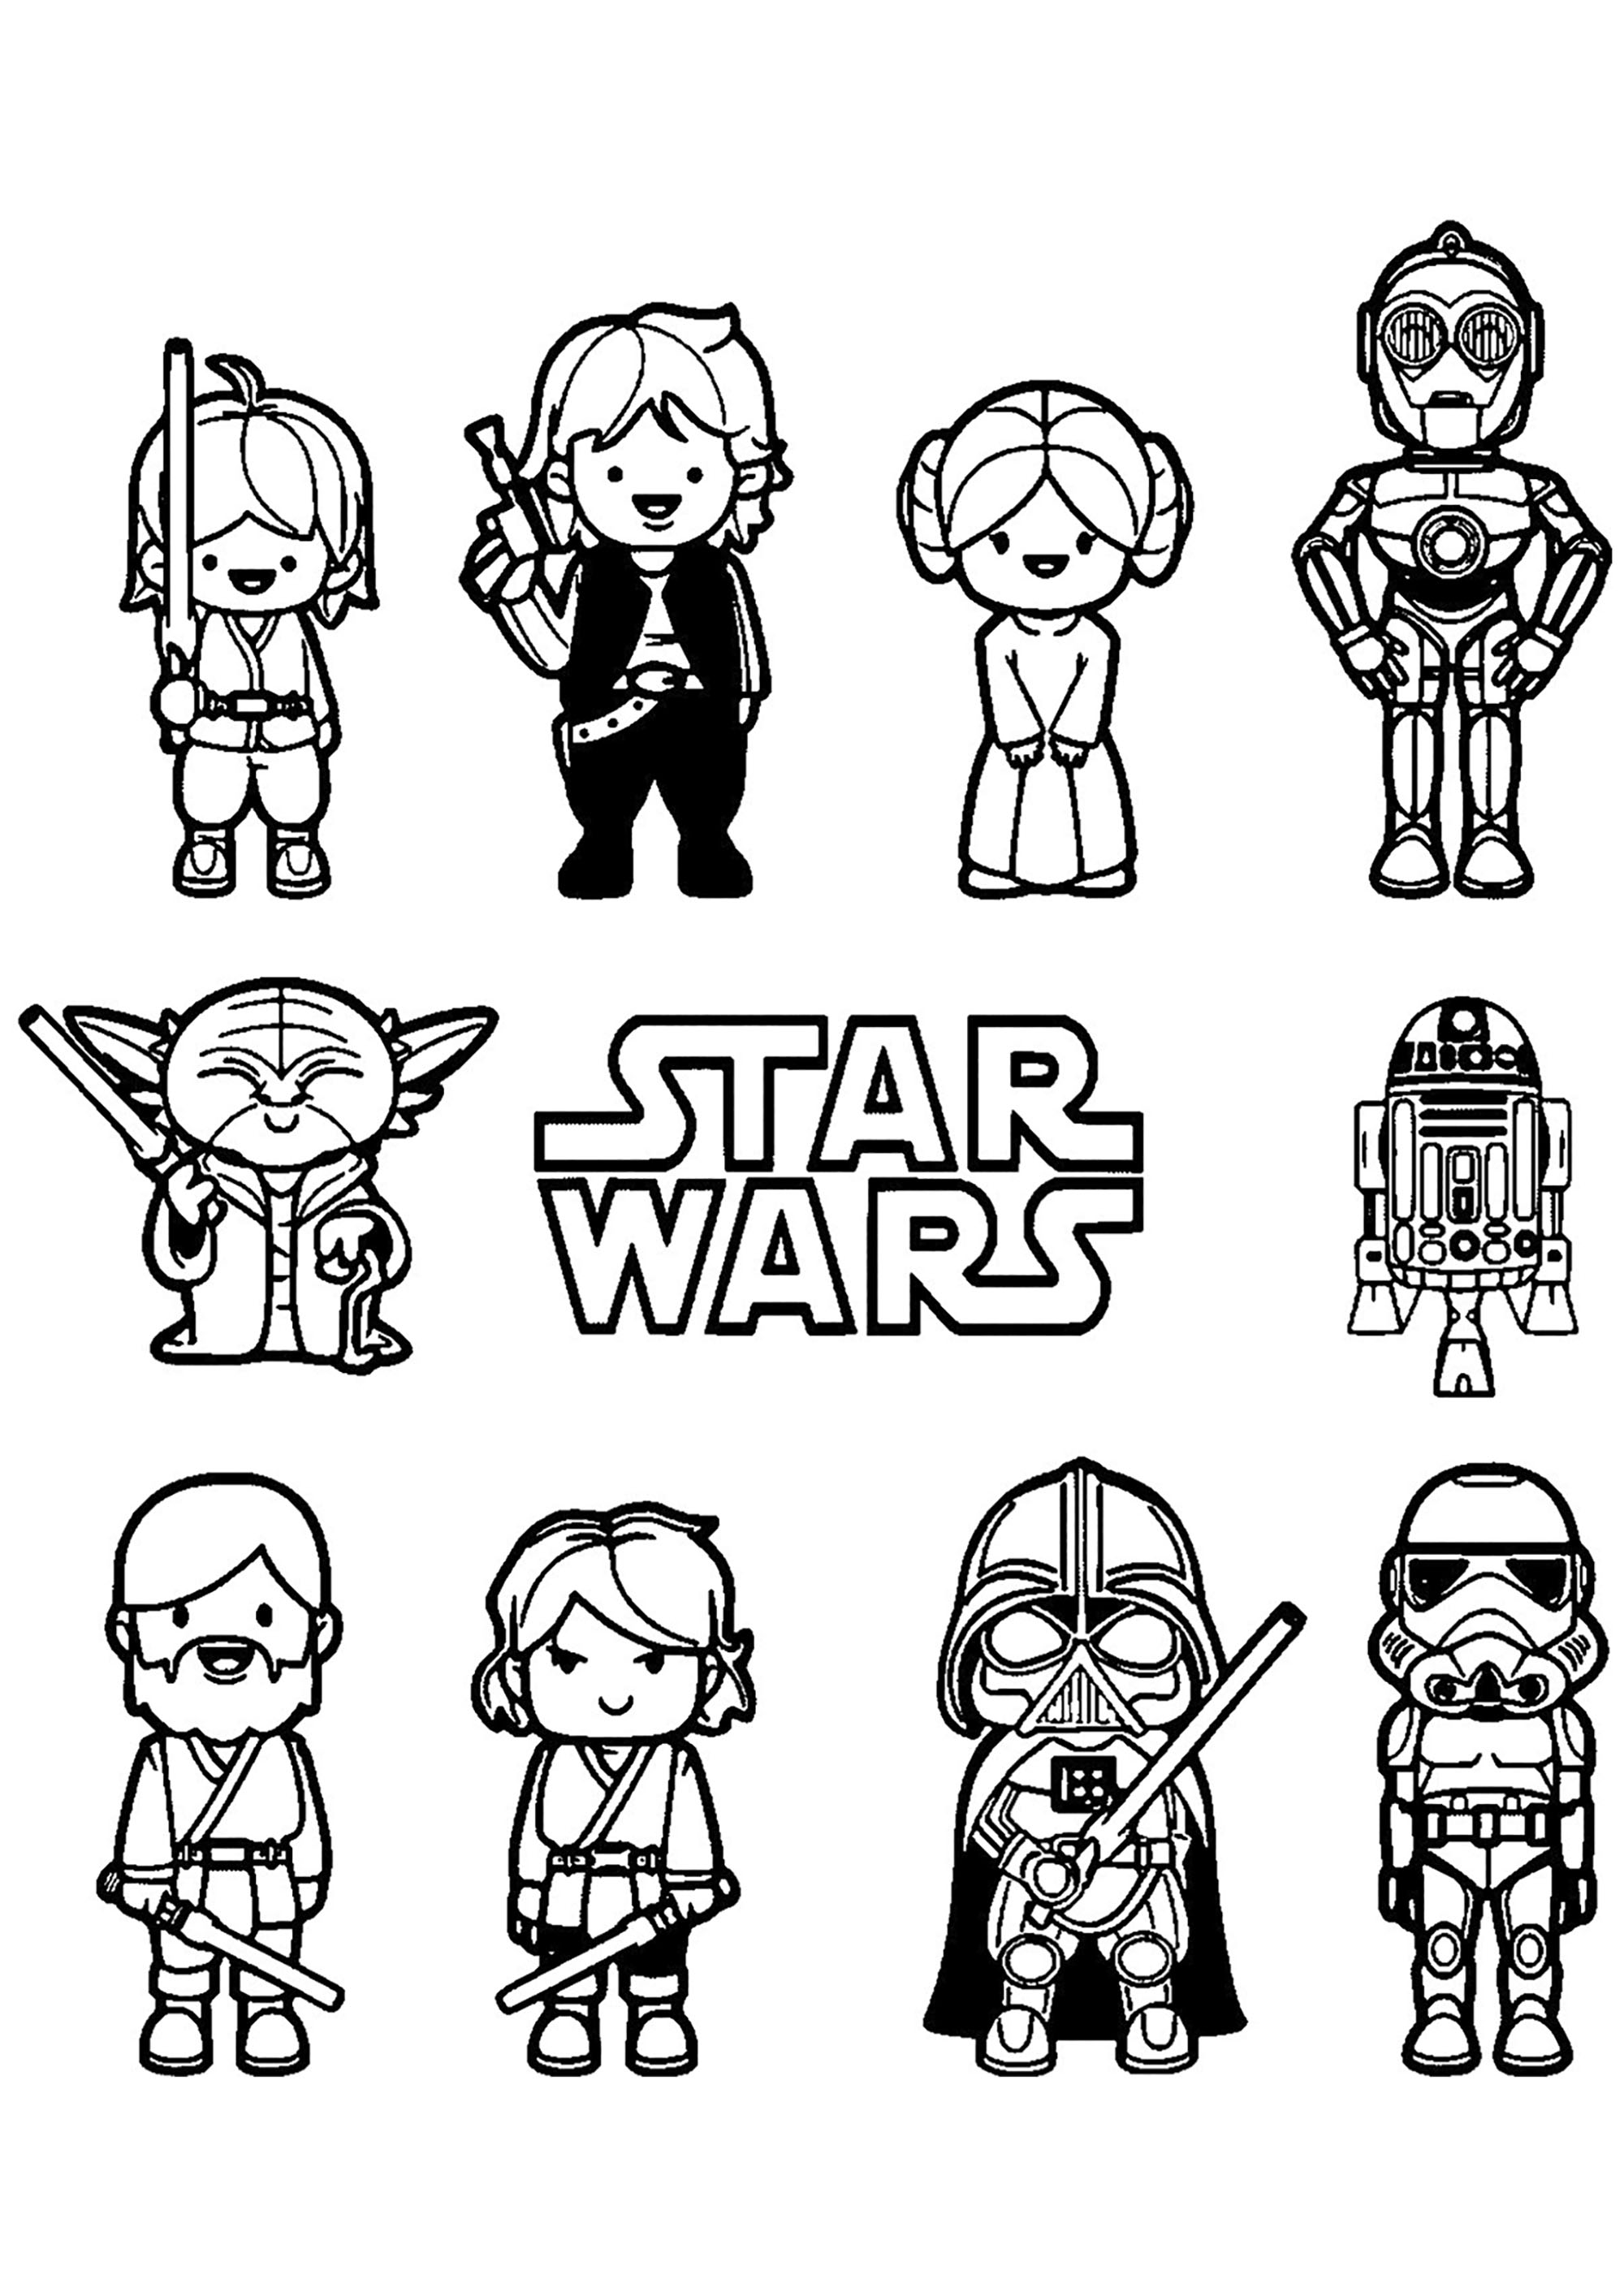 star wars coloring images star wars coloring pages download and print star wars coloring images wars star